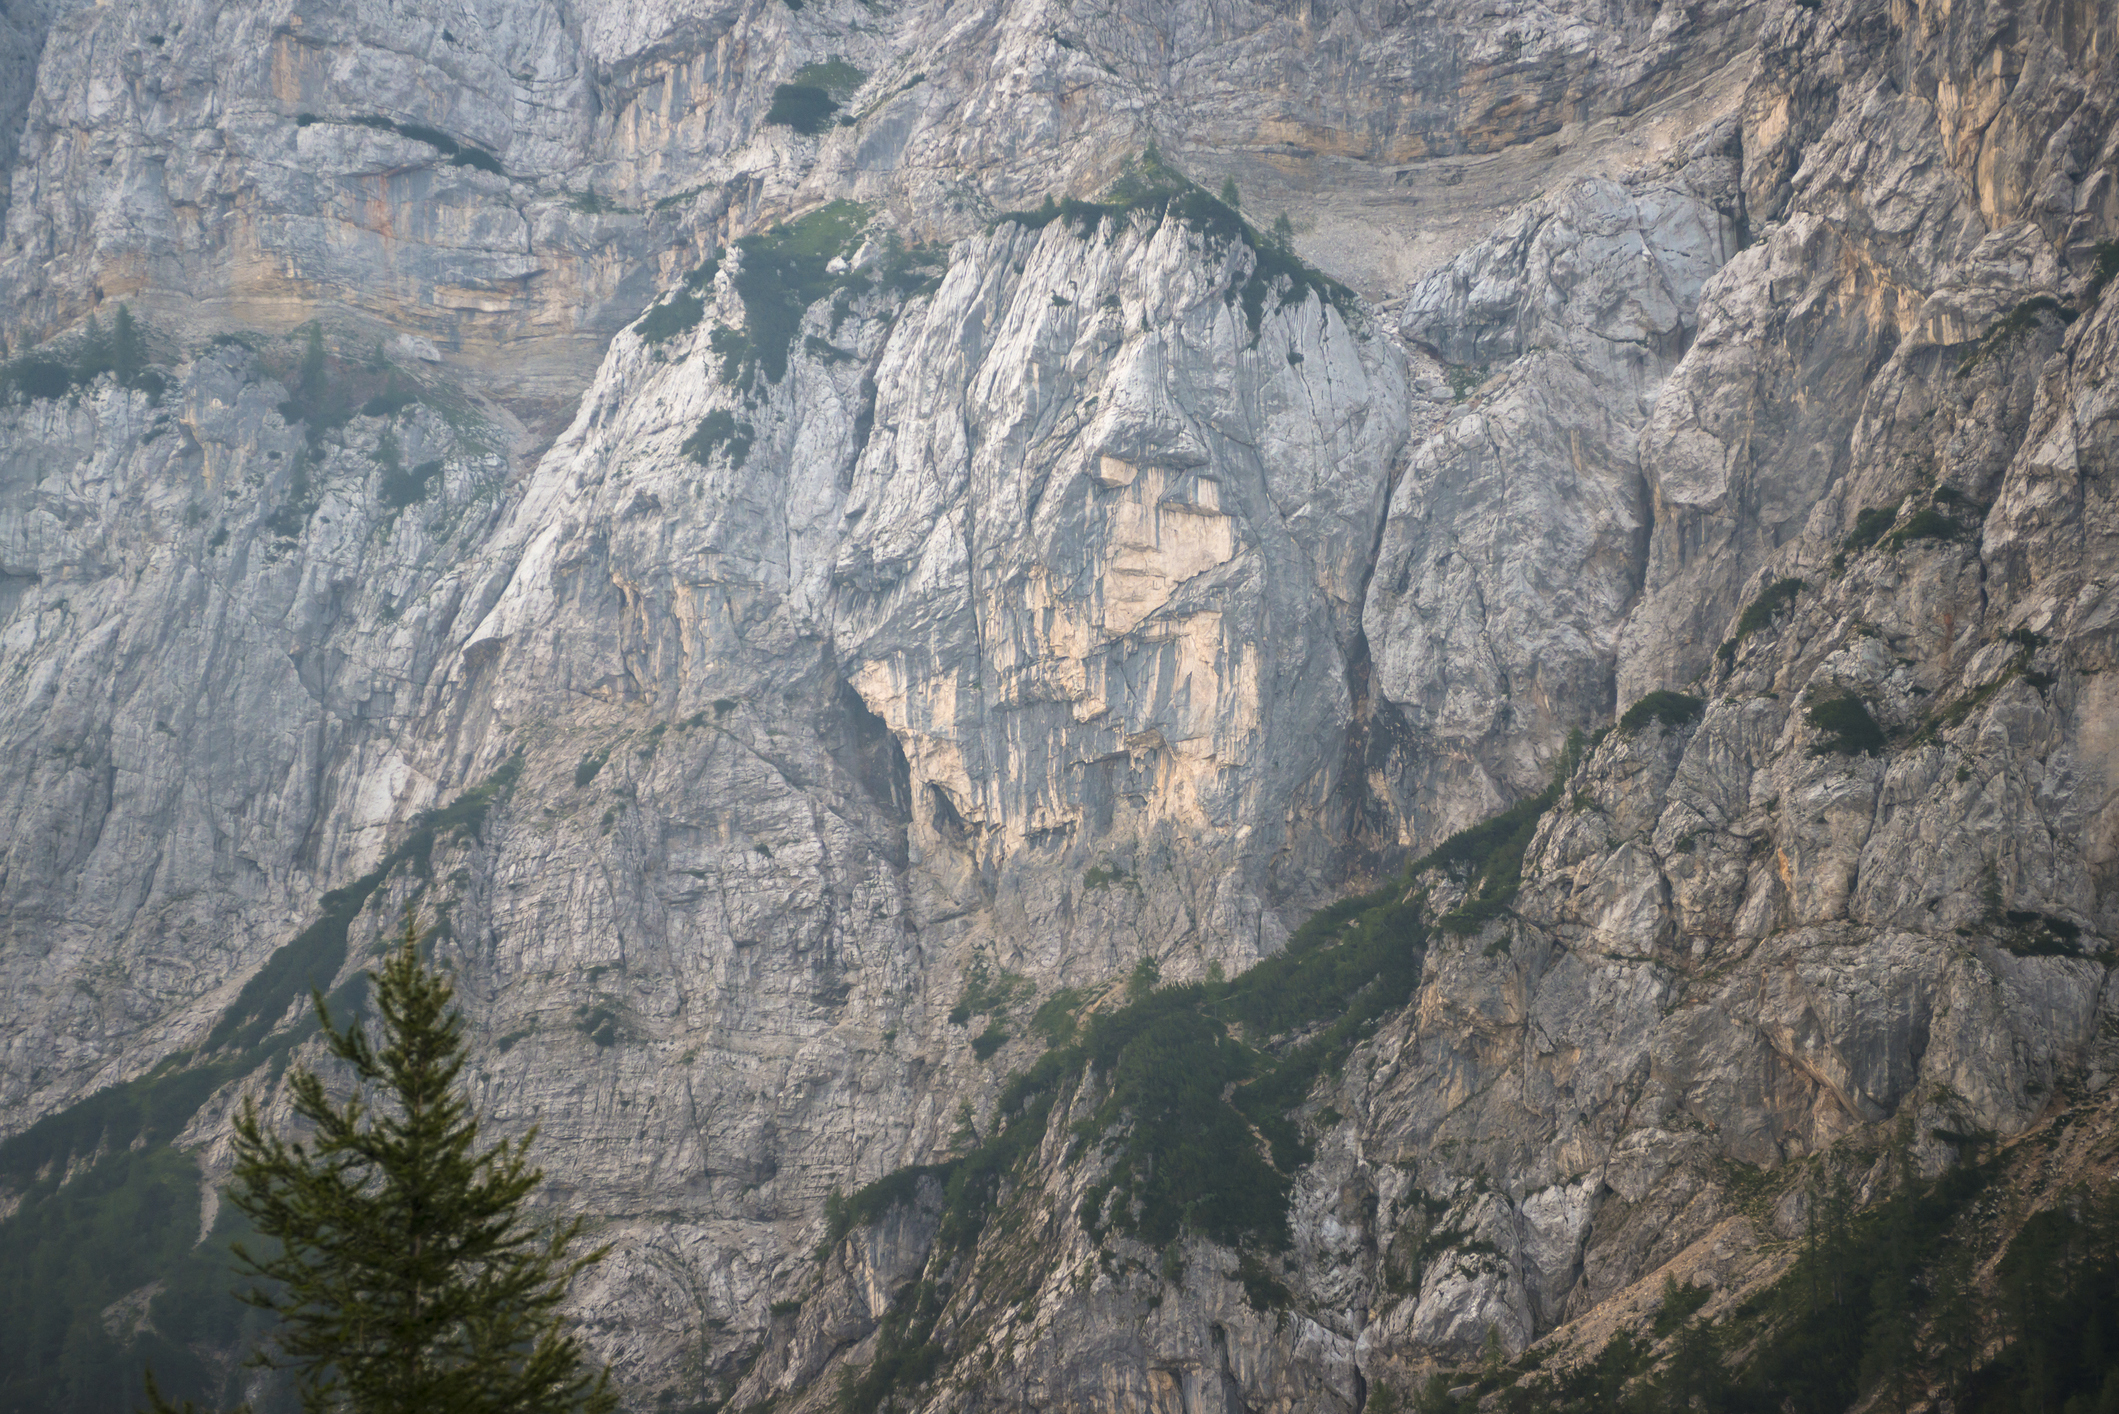 Pagan GIrl's face carved into the mountain